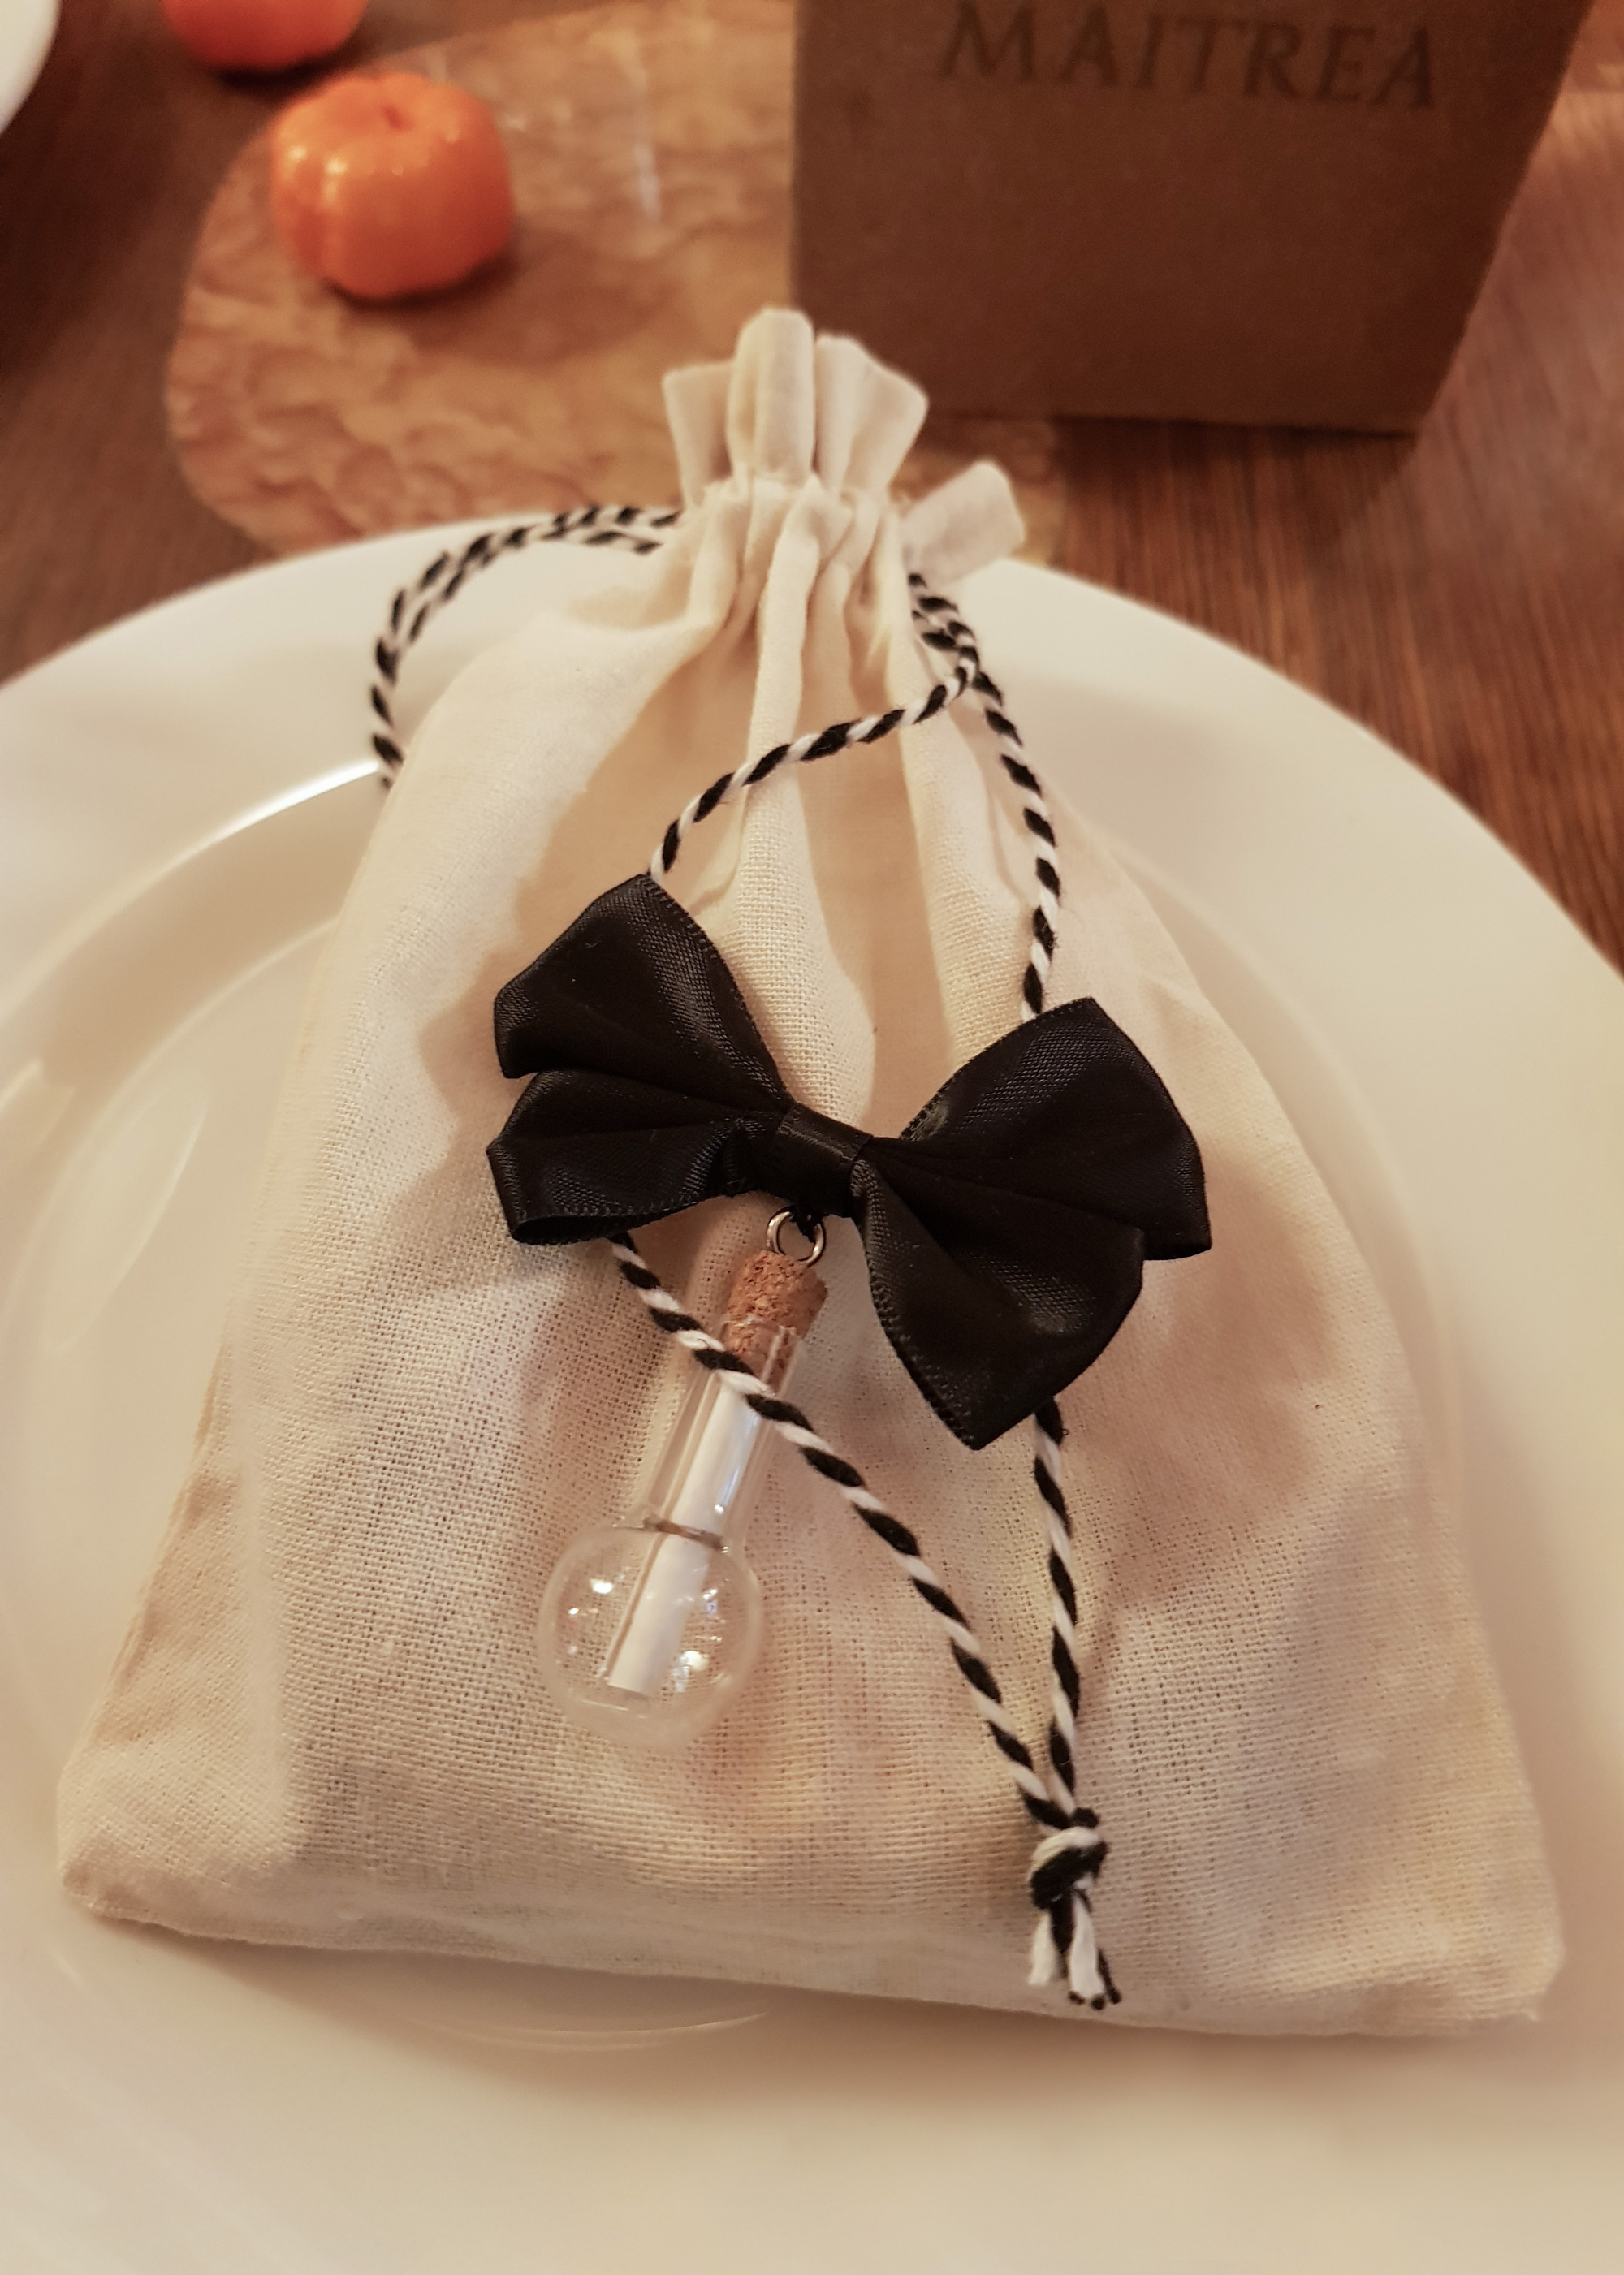 Wedding gift bag with a potion bottle containing a personalized note